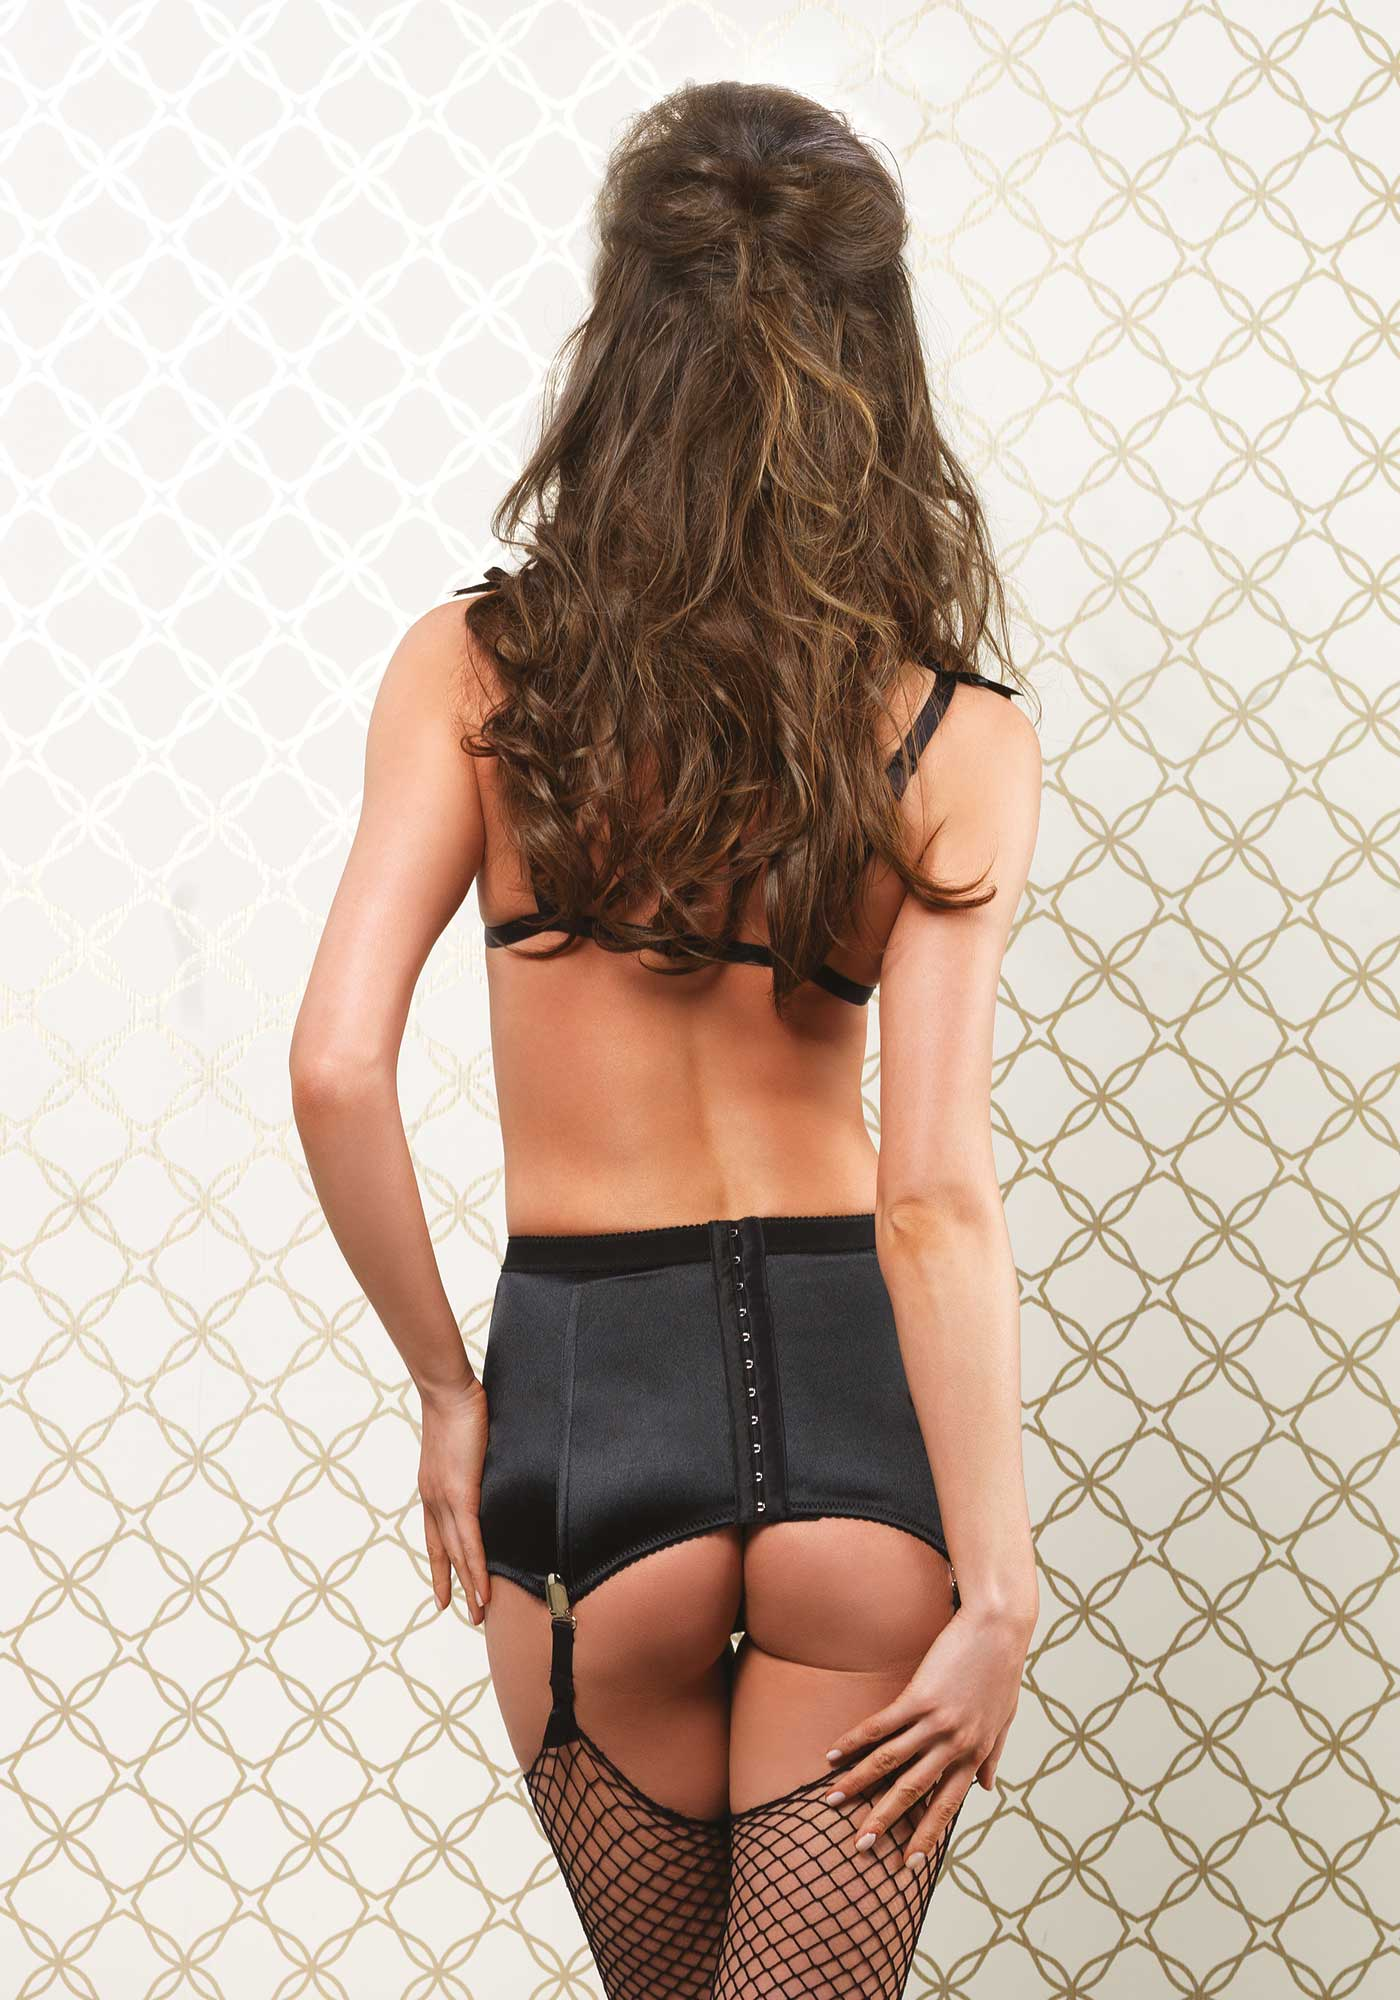 Bra, Girdle Skirt & G-String